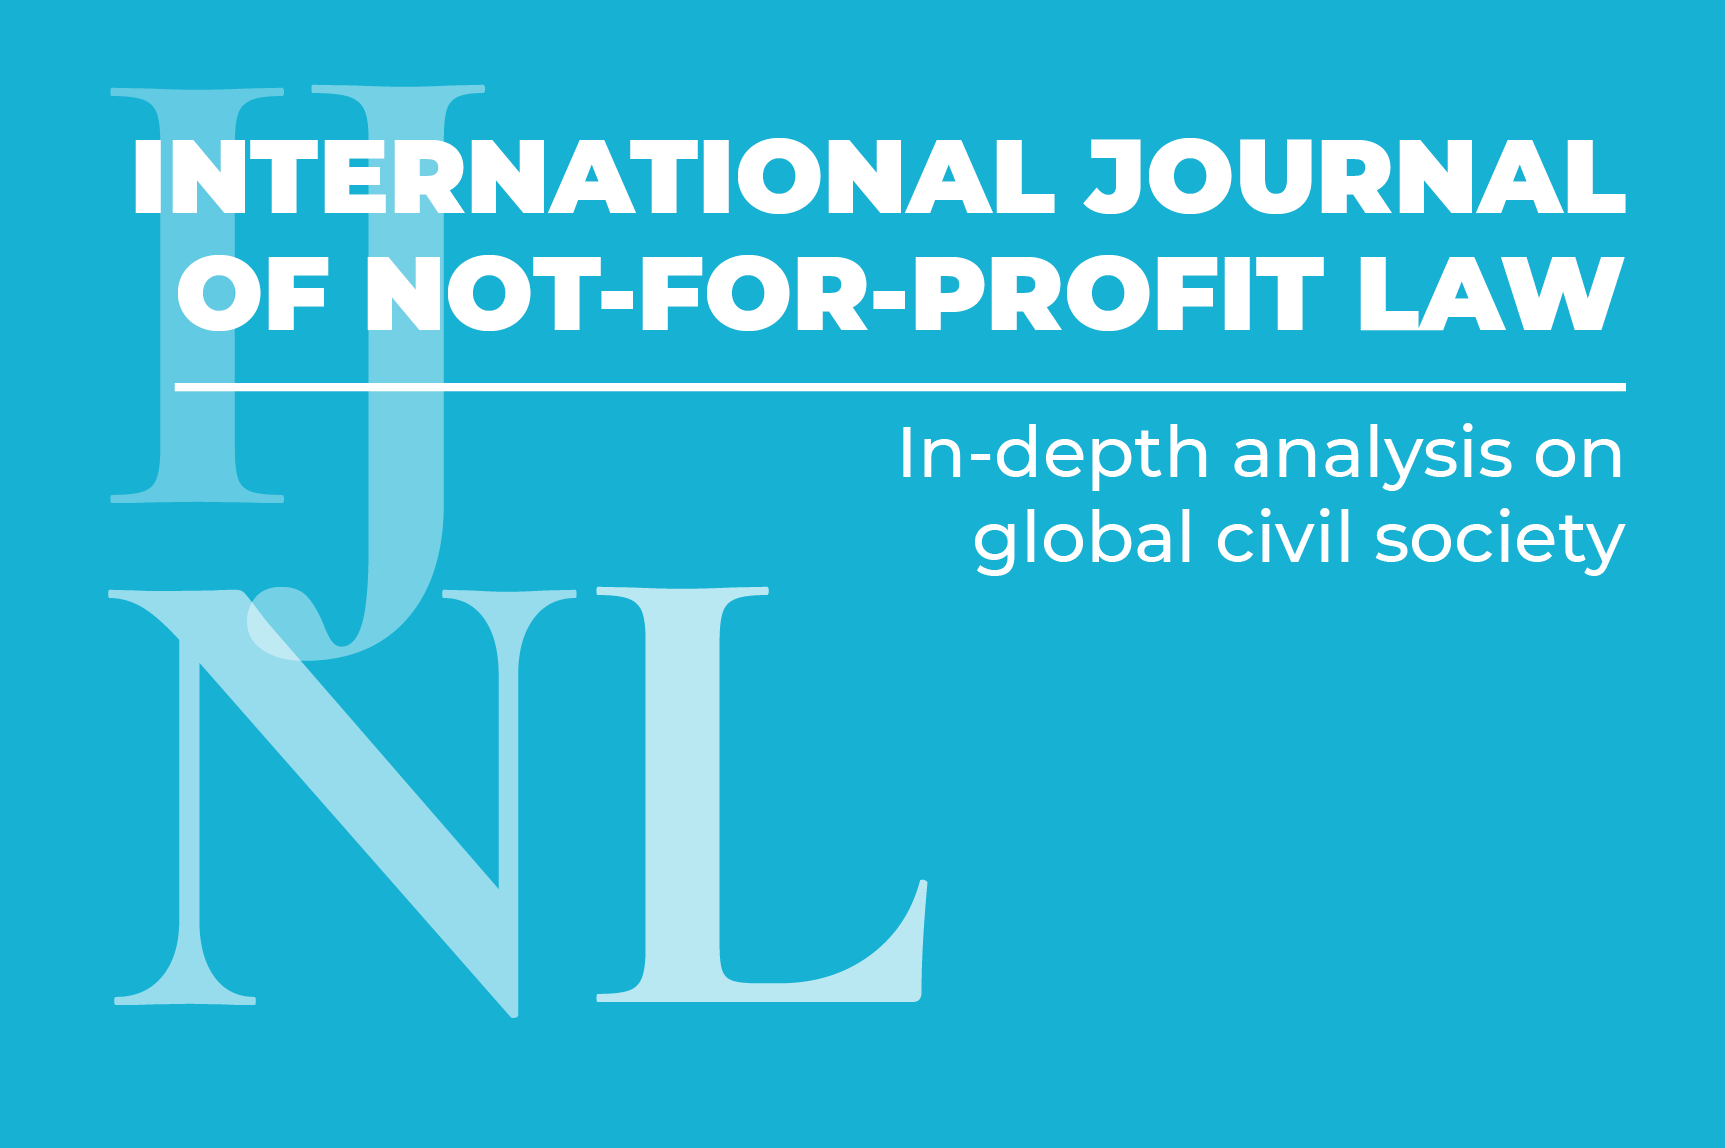 ICNL's International Journal for Not-for-Profit Law - landing page button